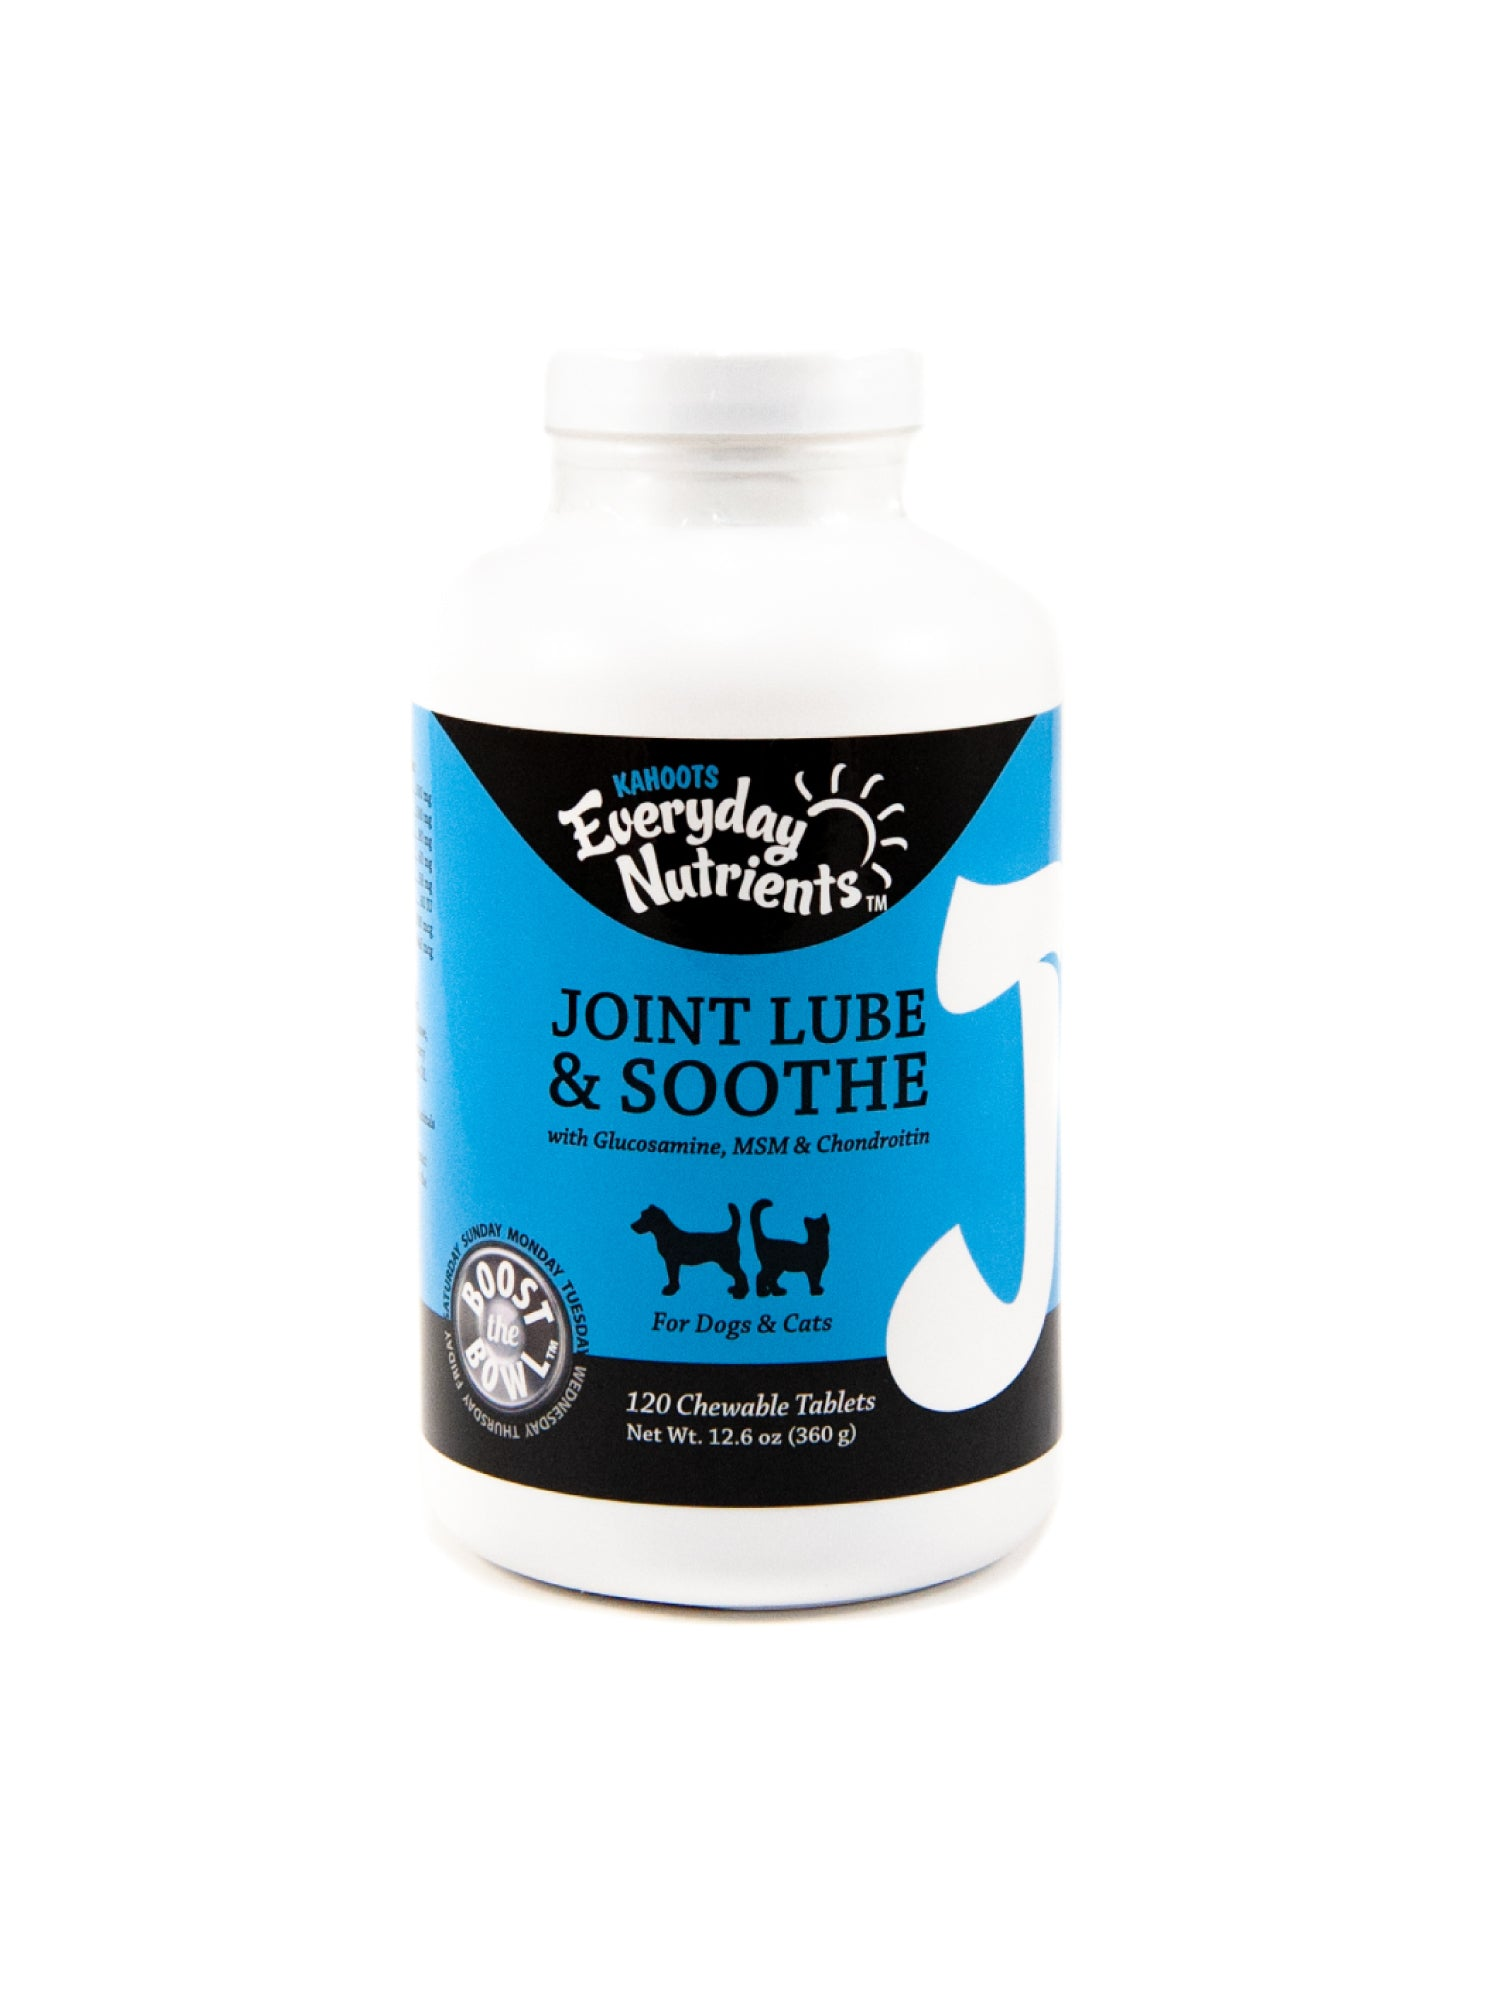 Joint Lube & Soothe